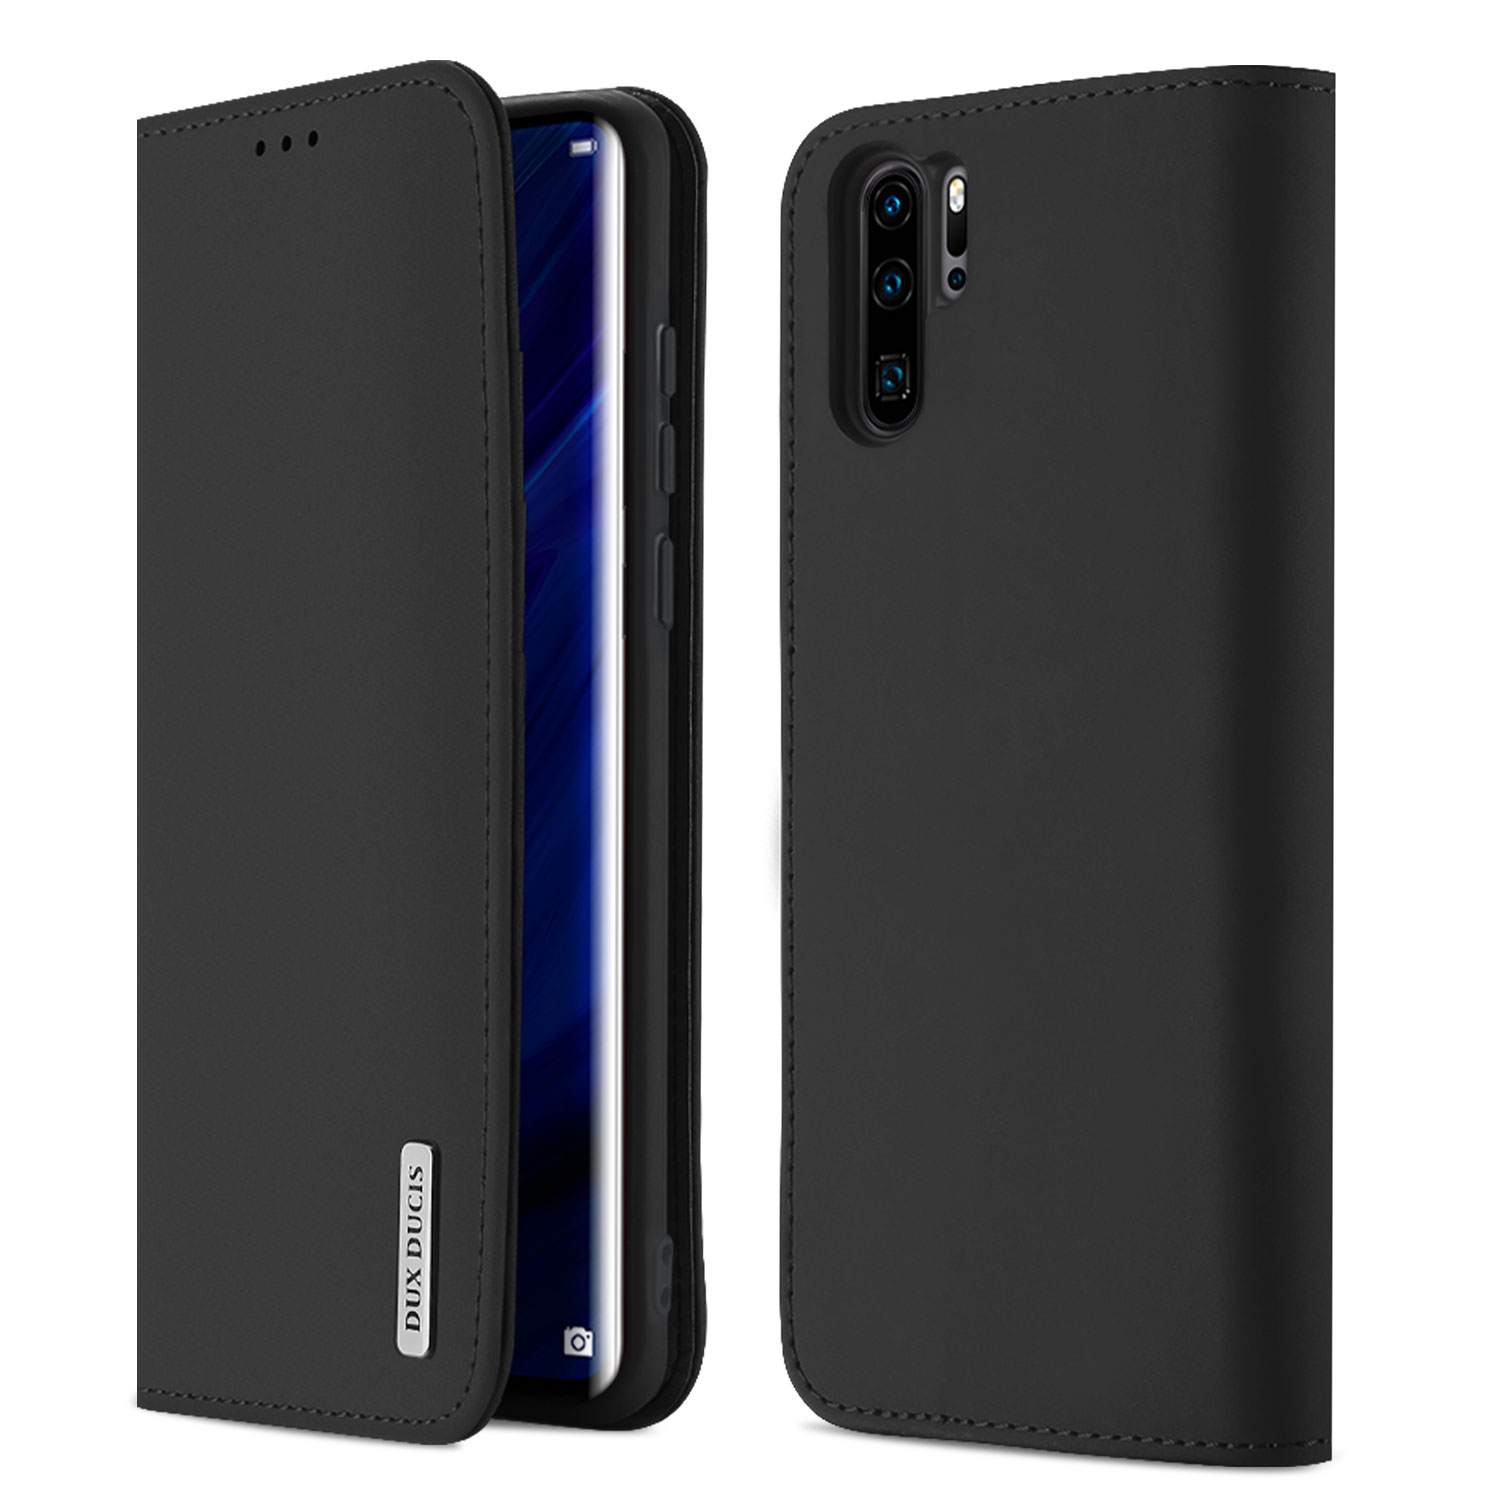 DUX DUCIS For Huawei P30 pro Luxury Genuine Leather Magnetic Flip Cover Full Protective Case with Bracket Card Slot black_Huawei P30 pro